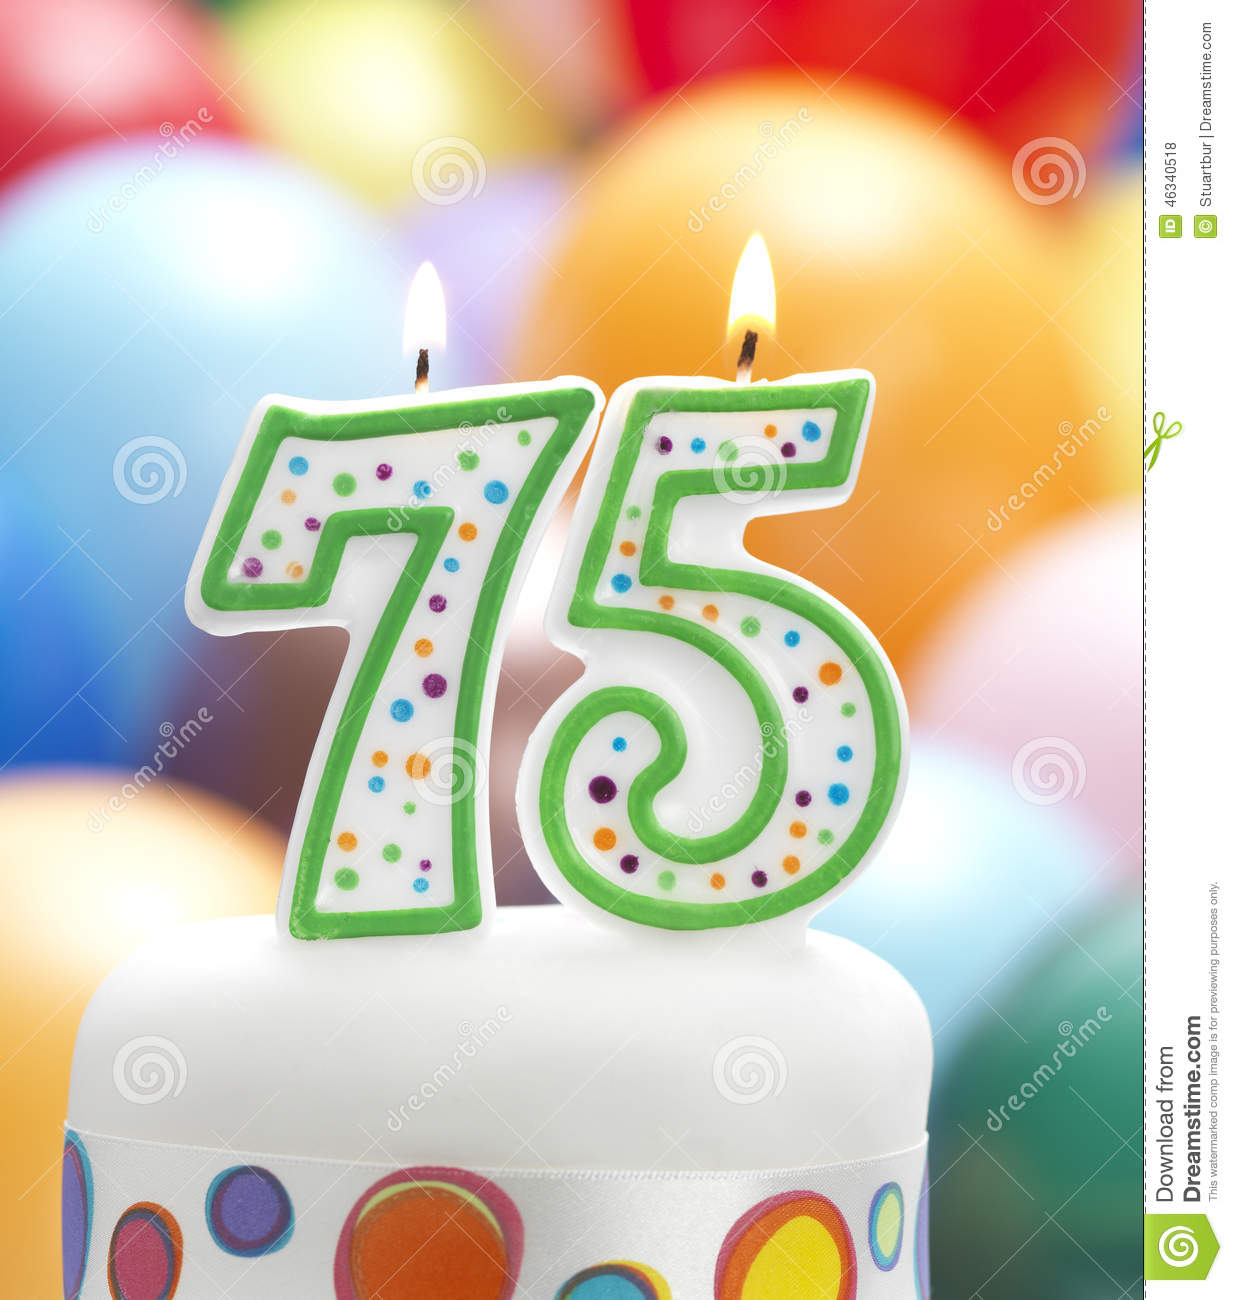 happy 75th birthday clipart s my th birthday candle balloon.